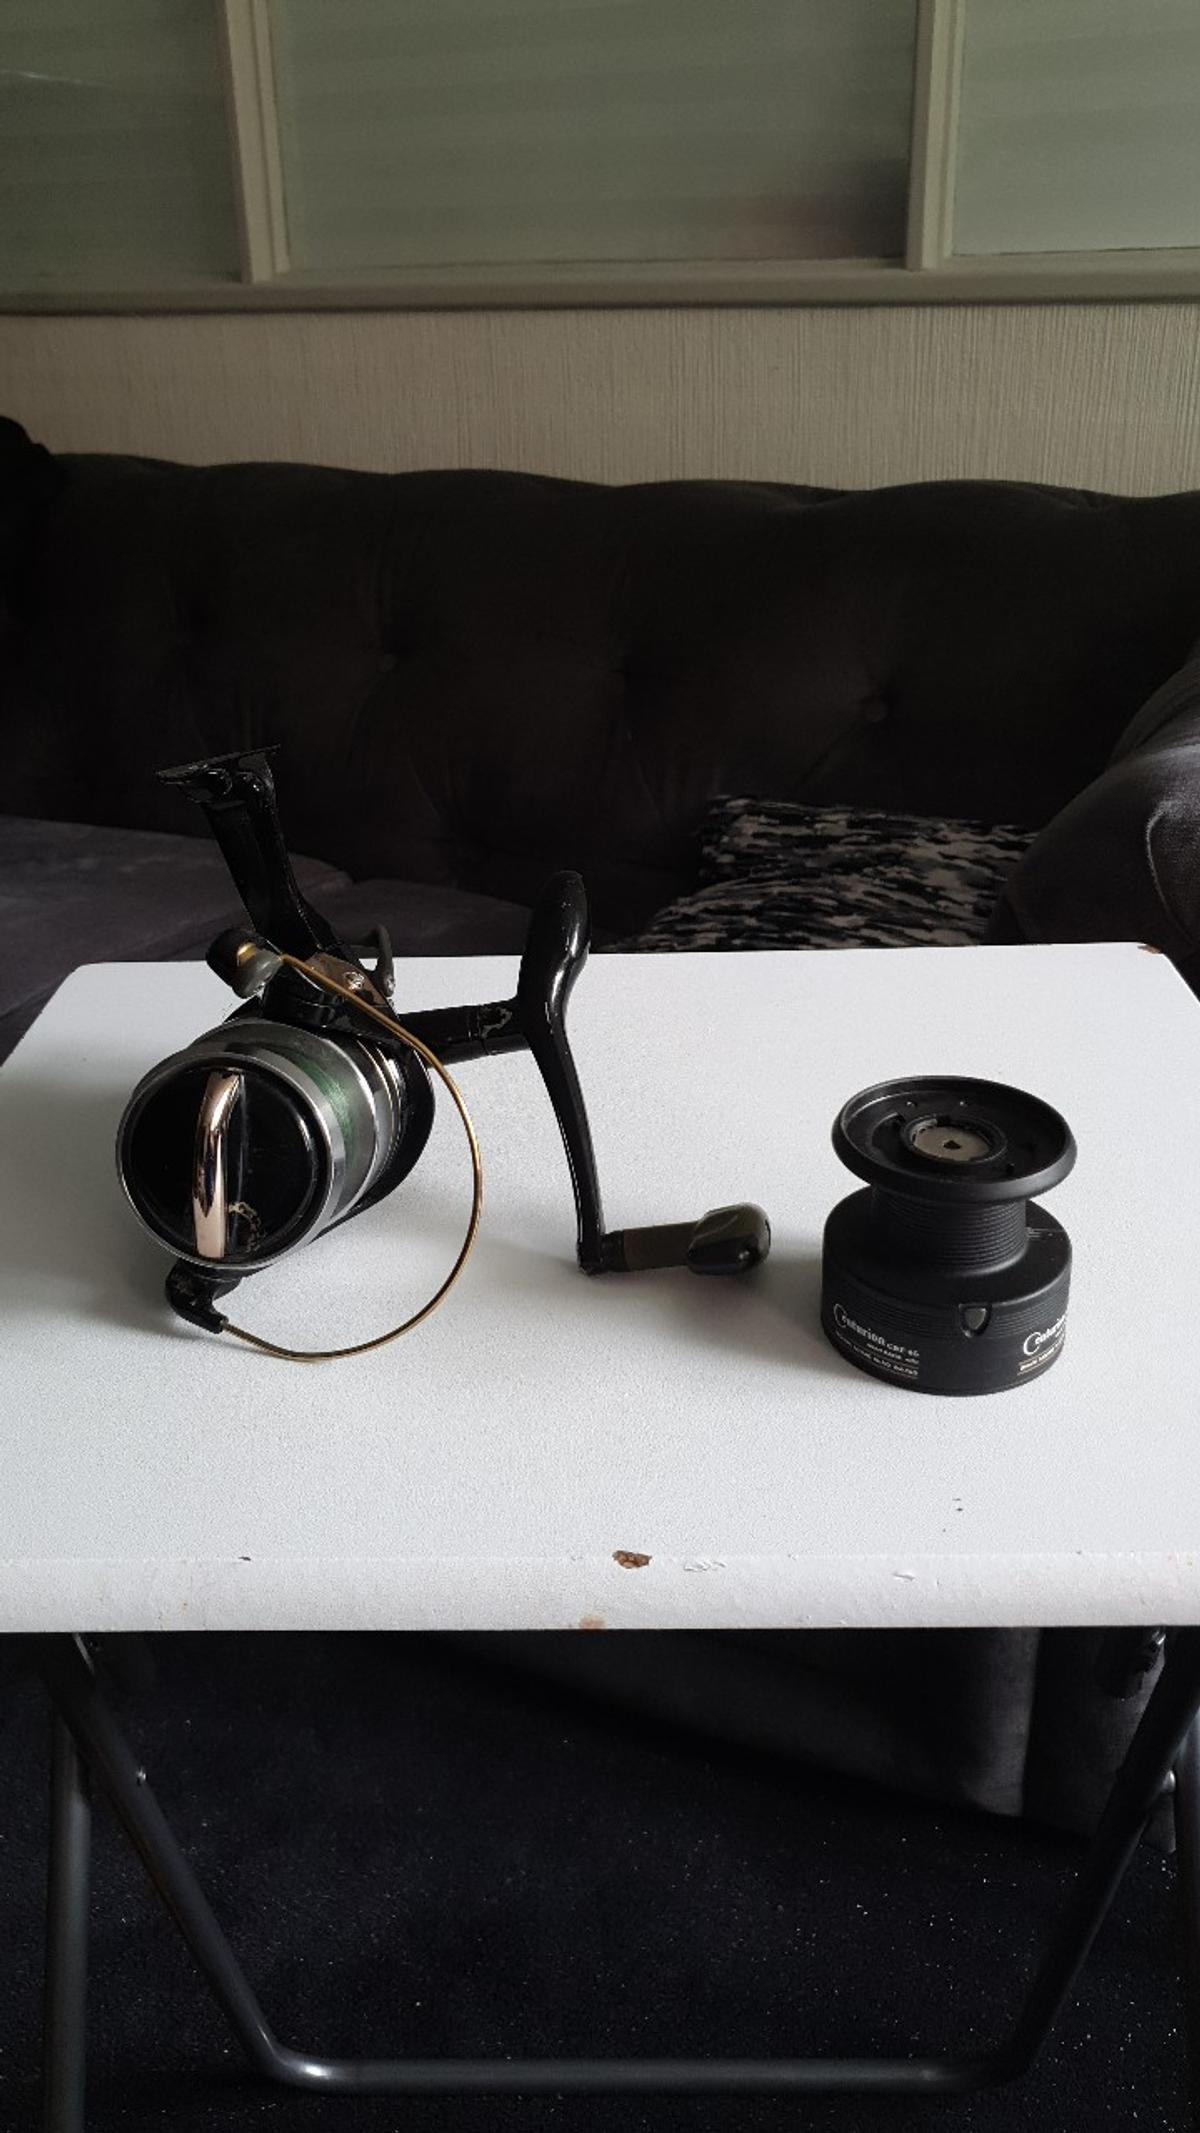 okuma big pit fishing reel used but still in great condition. comes with one extra spool. offers welcome